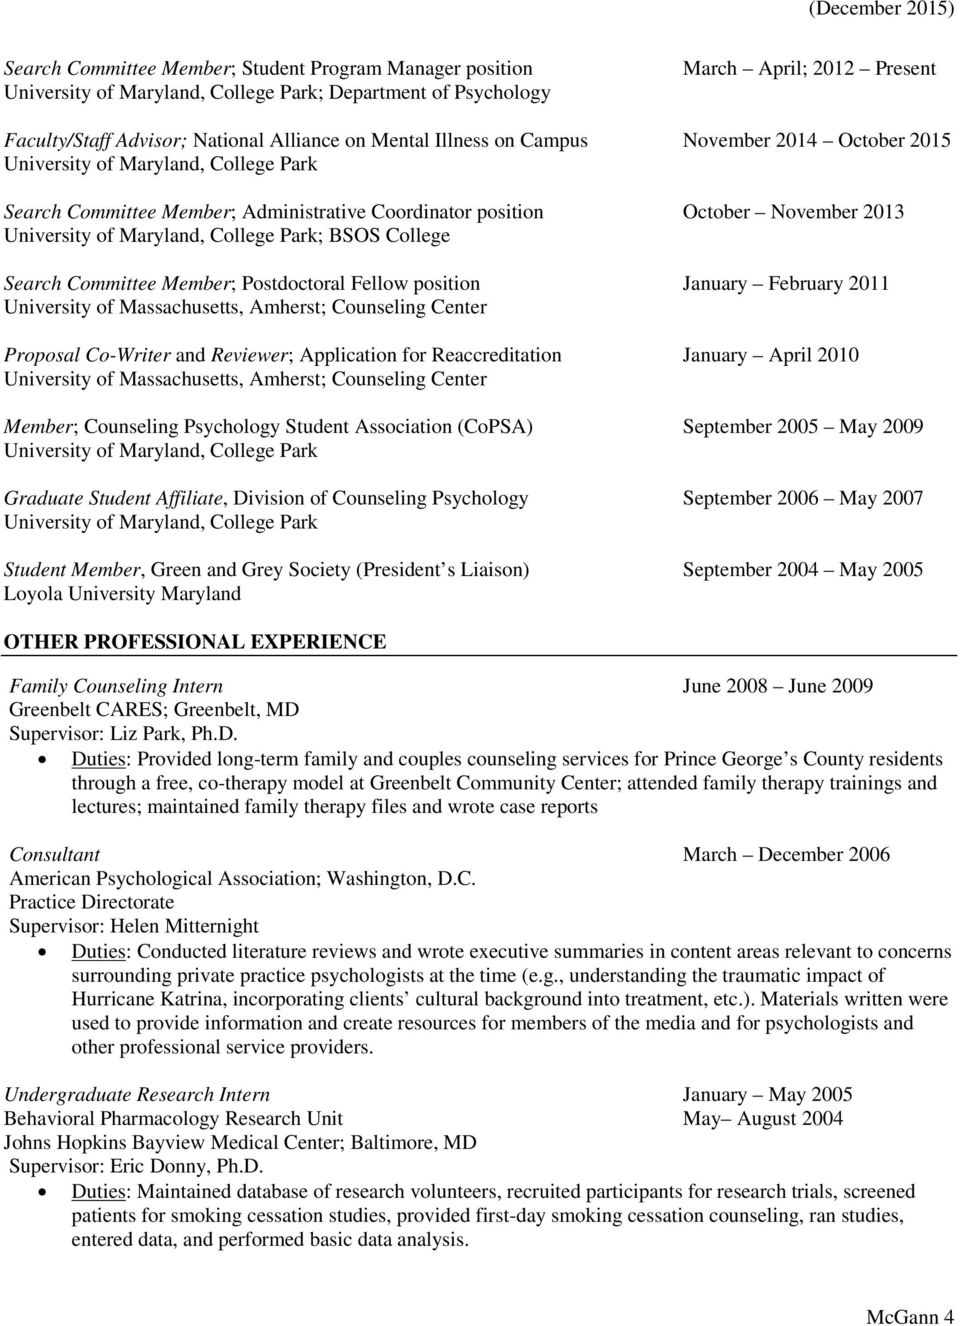 Center Proposal Co-Writer and Reviewer; Application for Reaccreditation January April 2010 ; Counseling Center Member; Counseling Psychology Student Association (CoPSA) September 2005 May 2009